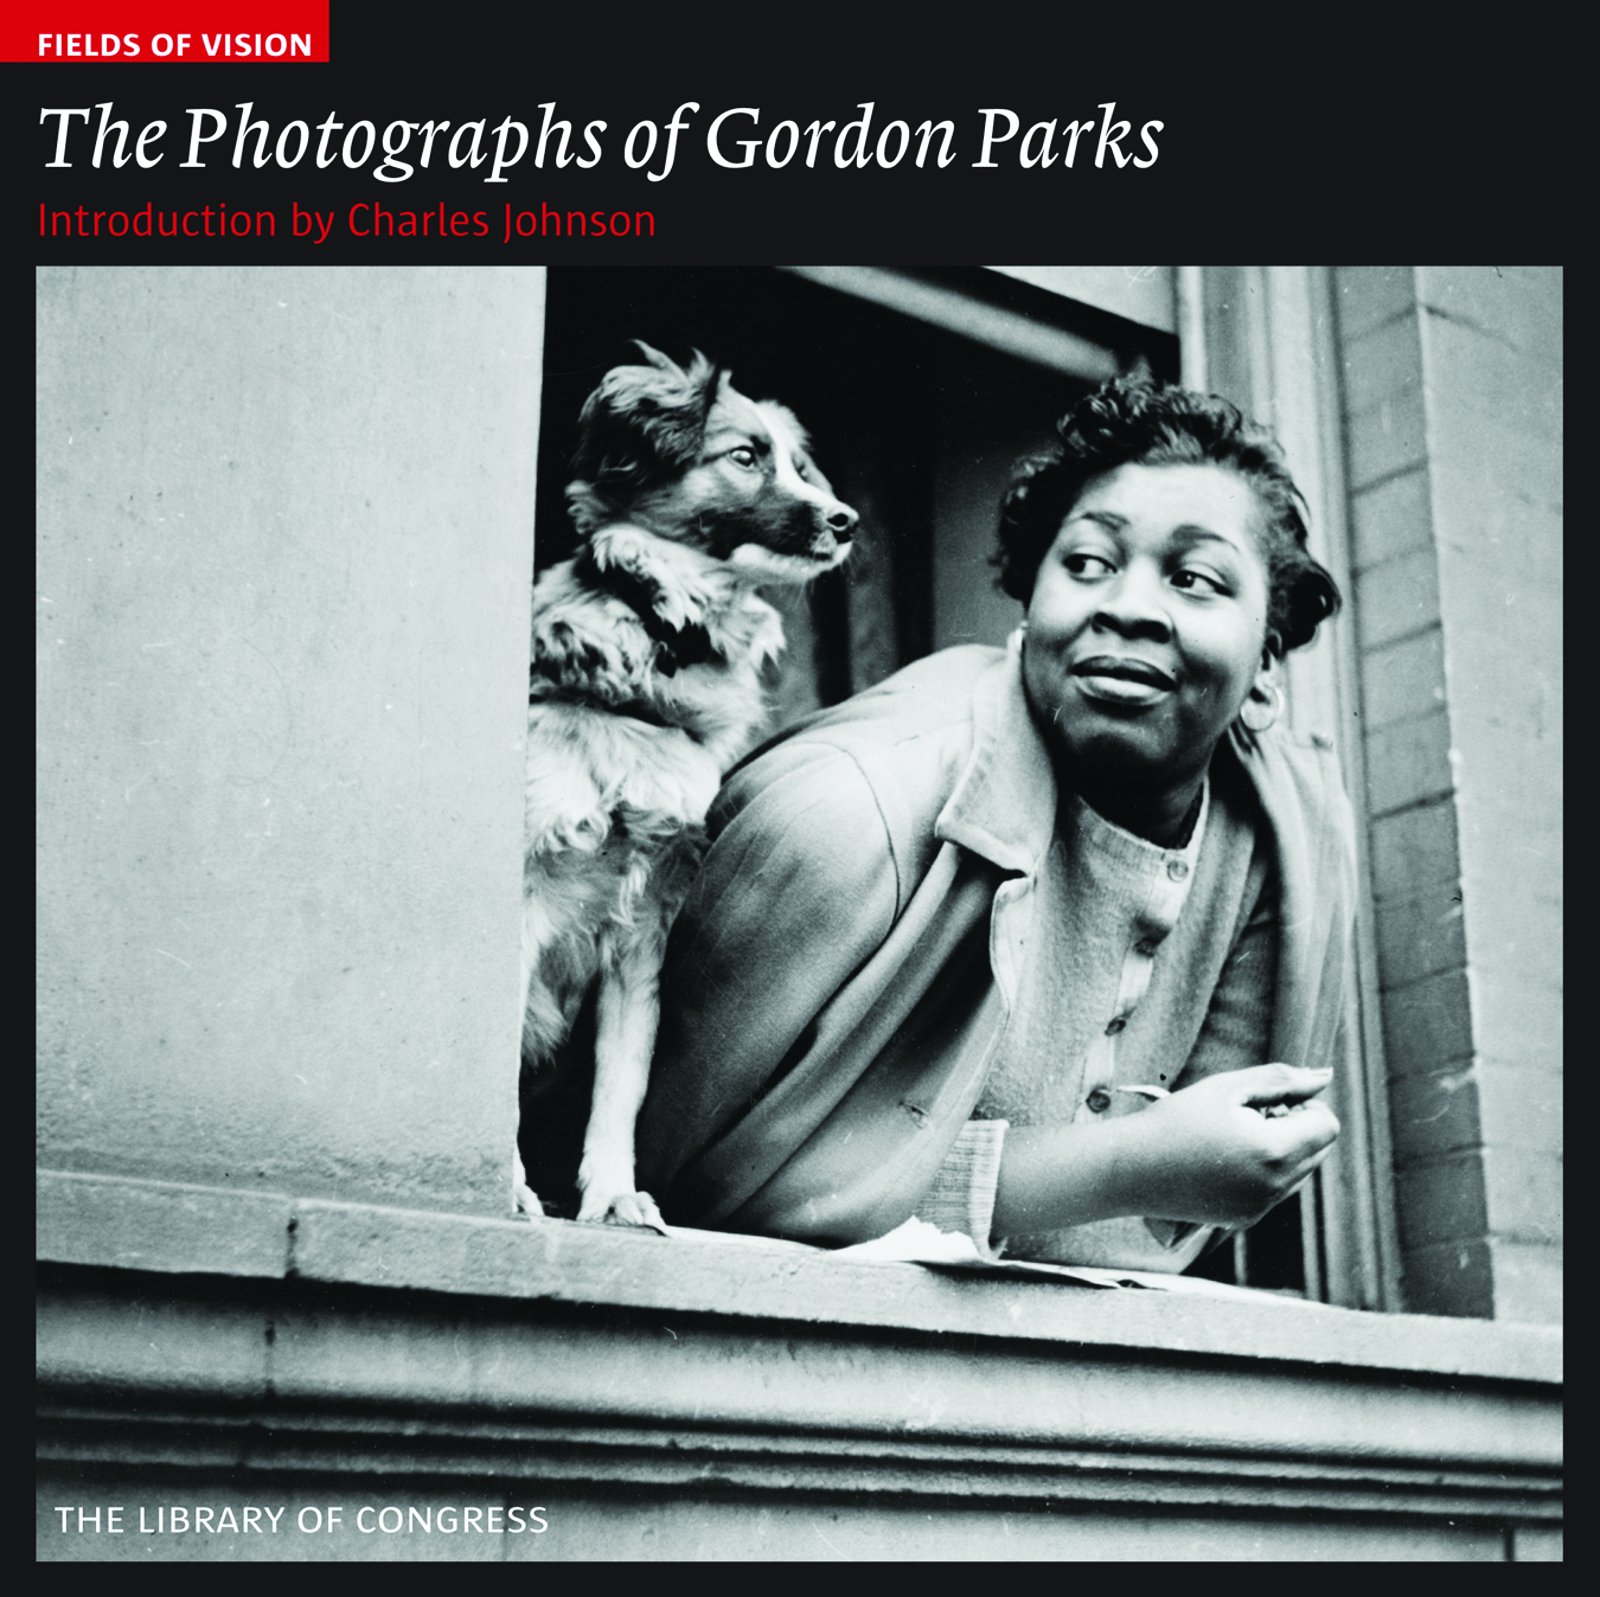 The Photographs of Gordon Parks: The Library of Congress (Fields of Vision) ebook